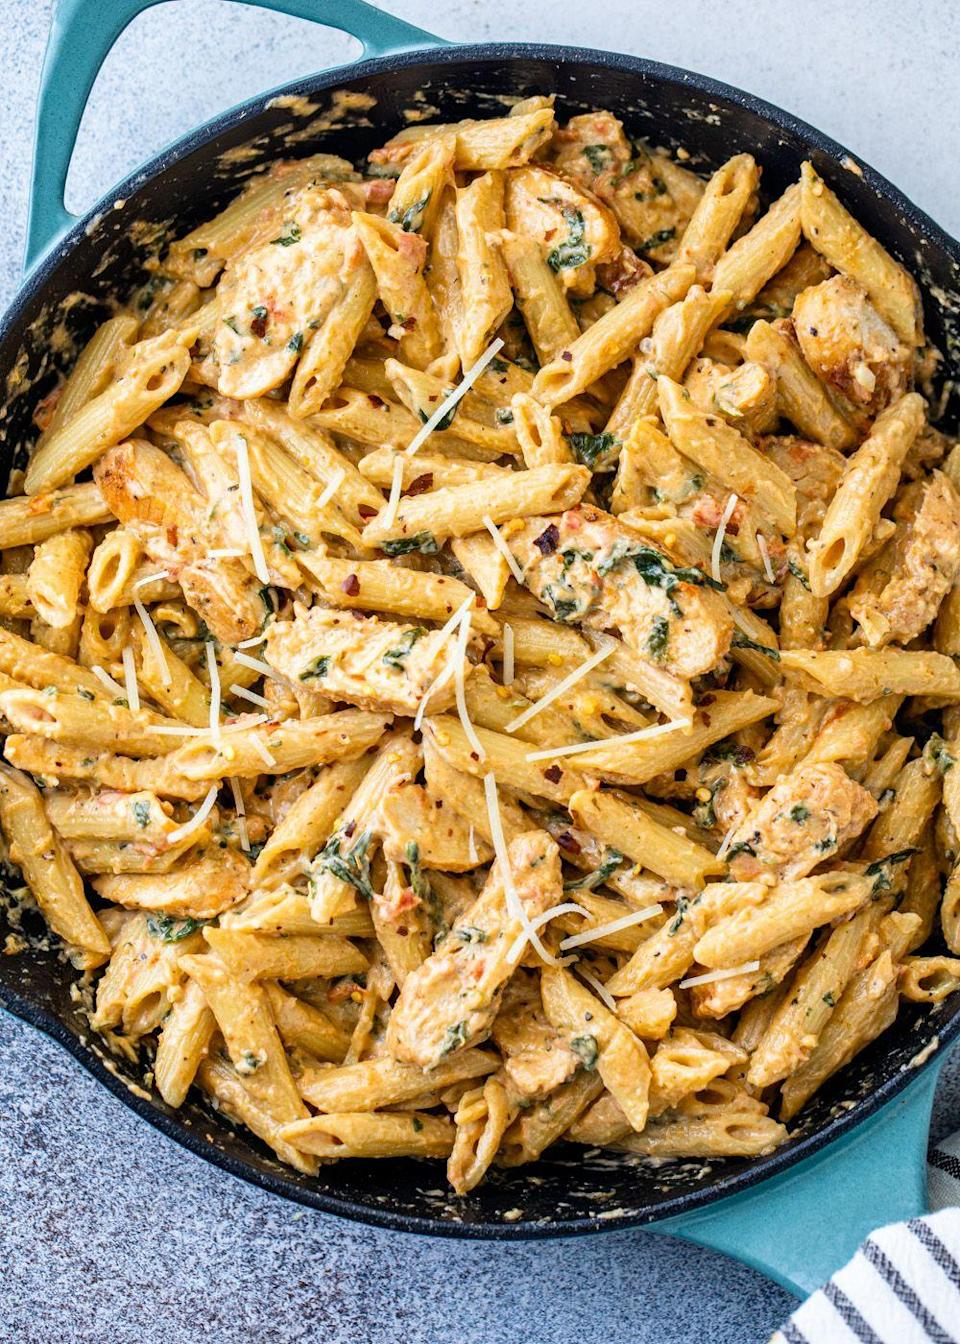 """<p>Be warned: Once you make this pasta, you'll crave it on almost every occasion. It's that good.</p><p><strong>Get the recipe at <a href=""""https://gimmedelicious.com/creamy-garlic-chicken-pasta/"""" rel=""""nofollow noopener"""" target=""""_blank"""" data-ylk=""""slk:Gimme Delicious"""" class=""""link rapid-noclick-resp"""">Gimme Delicious</a>.</strong></p>"""